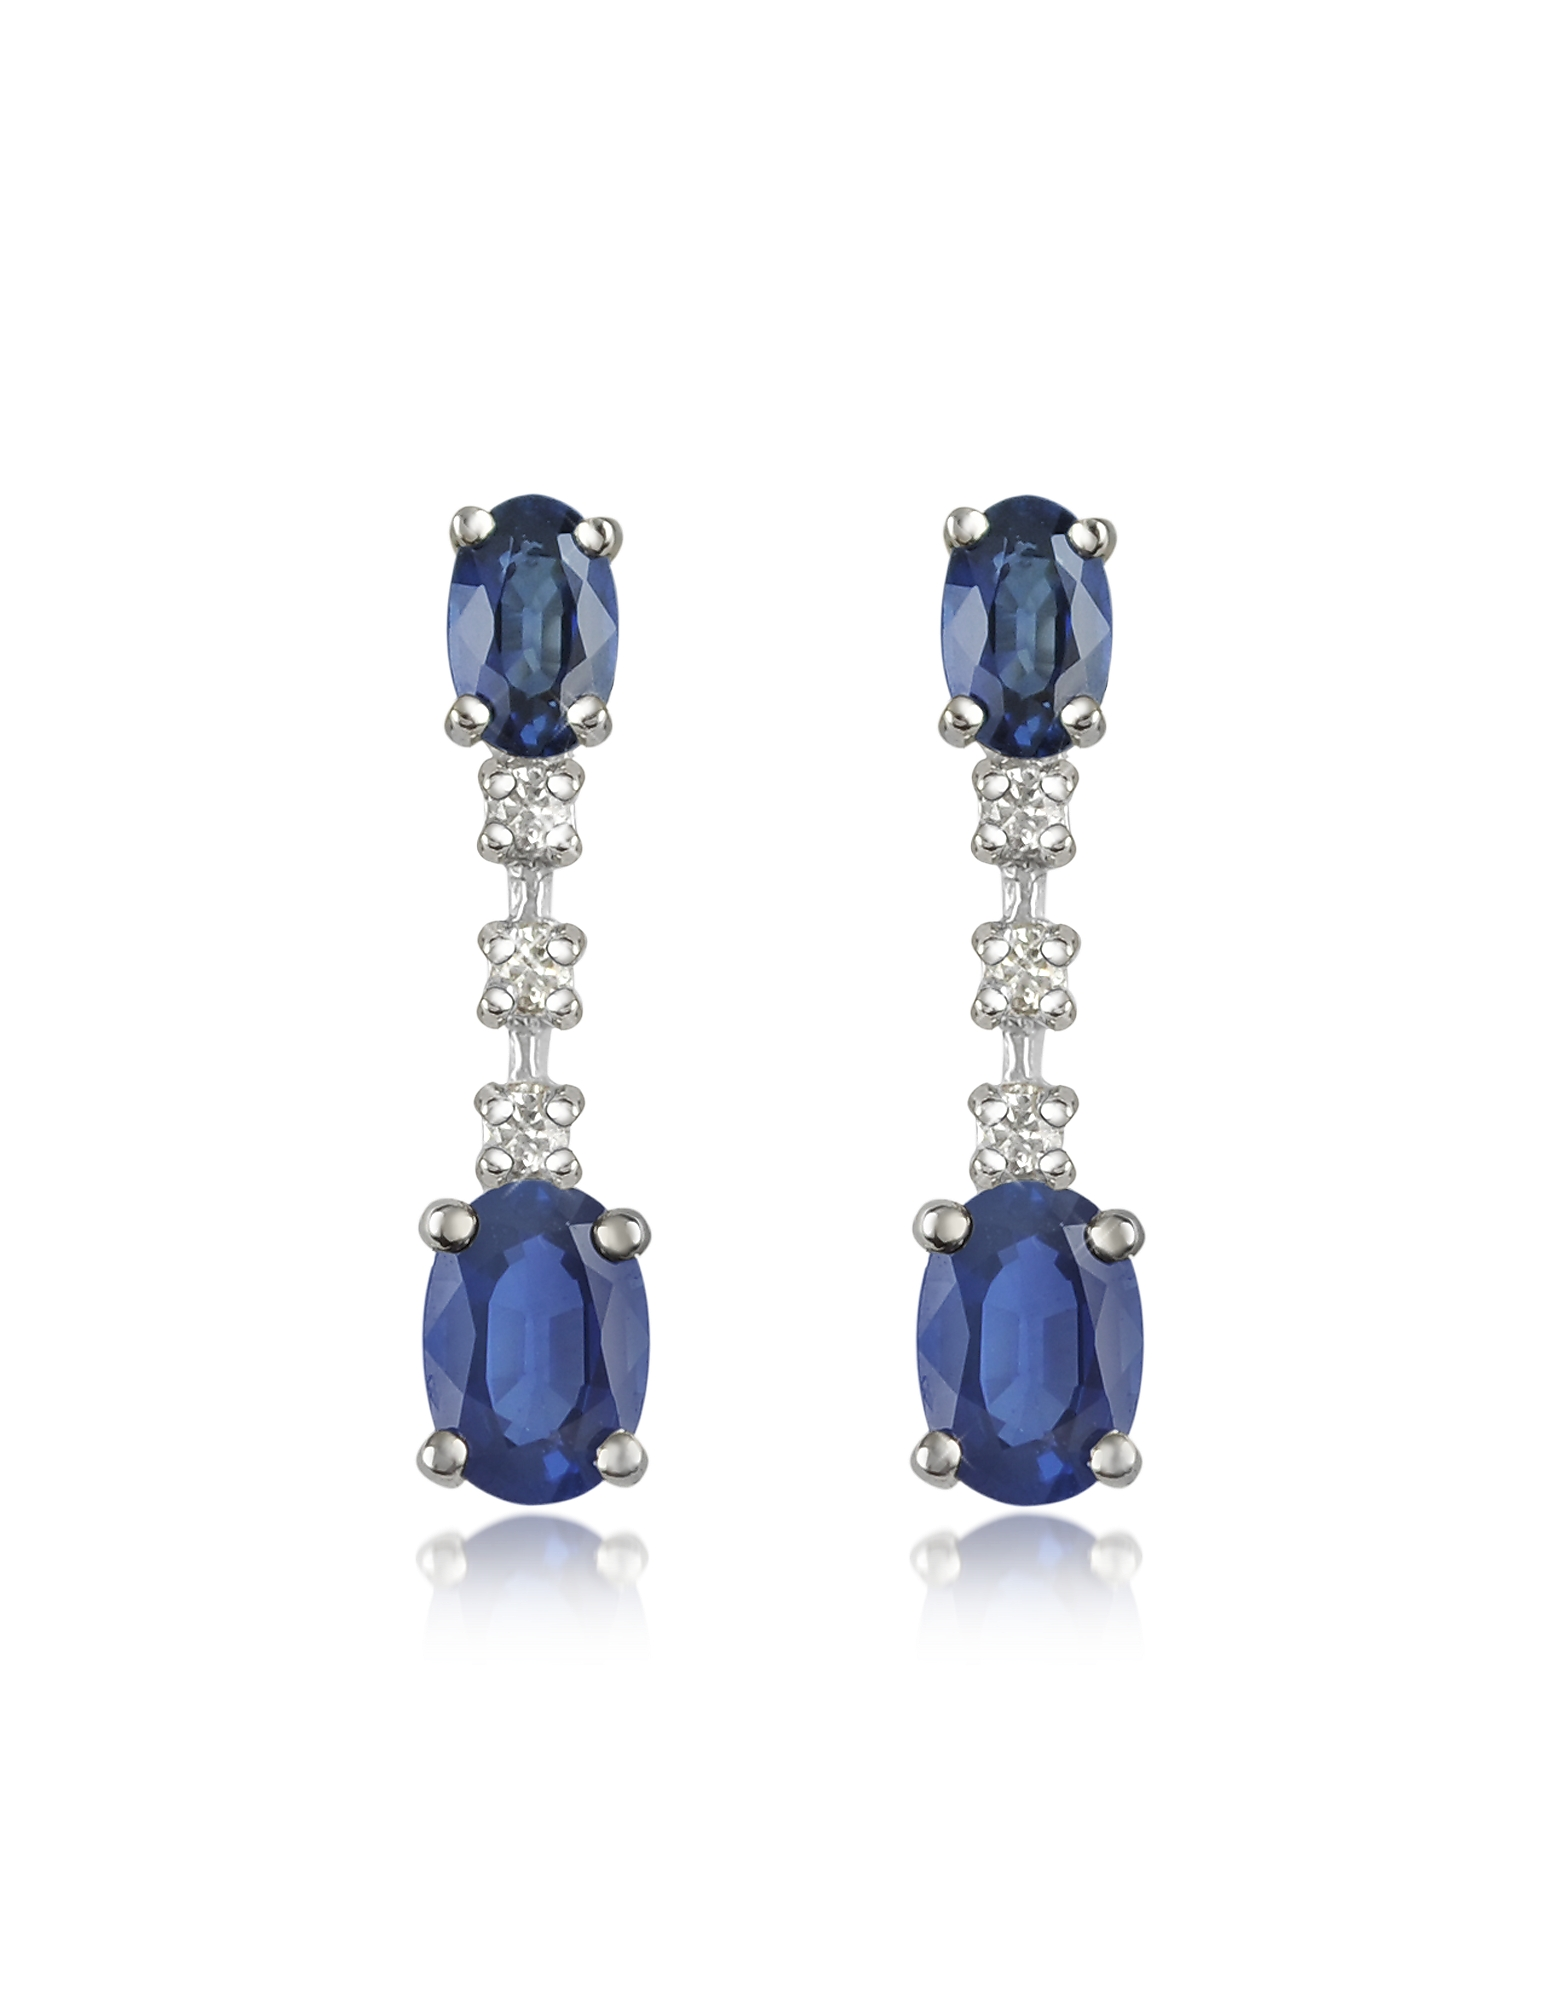 Incanto Royale Earrings, Sapphire and Diamond 18K Gold Drop Earrings